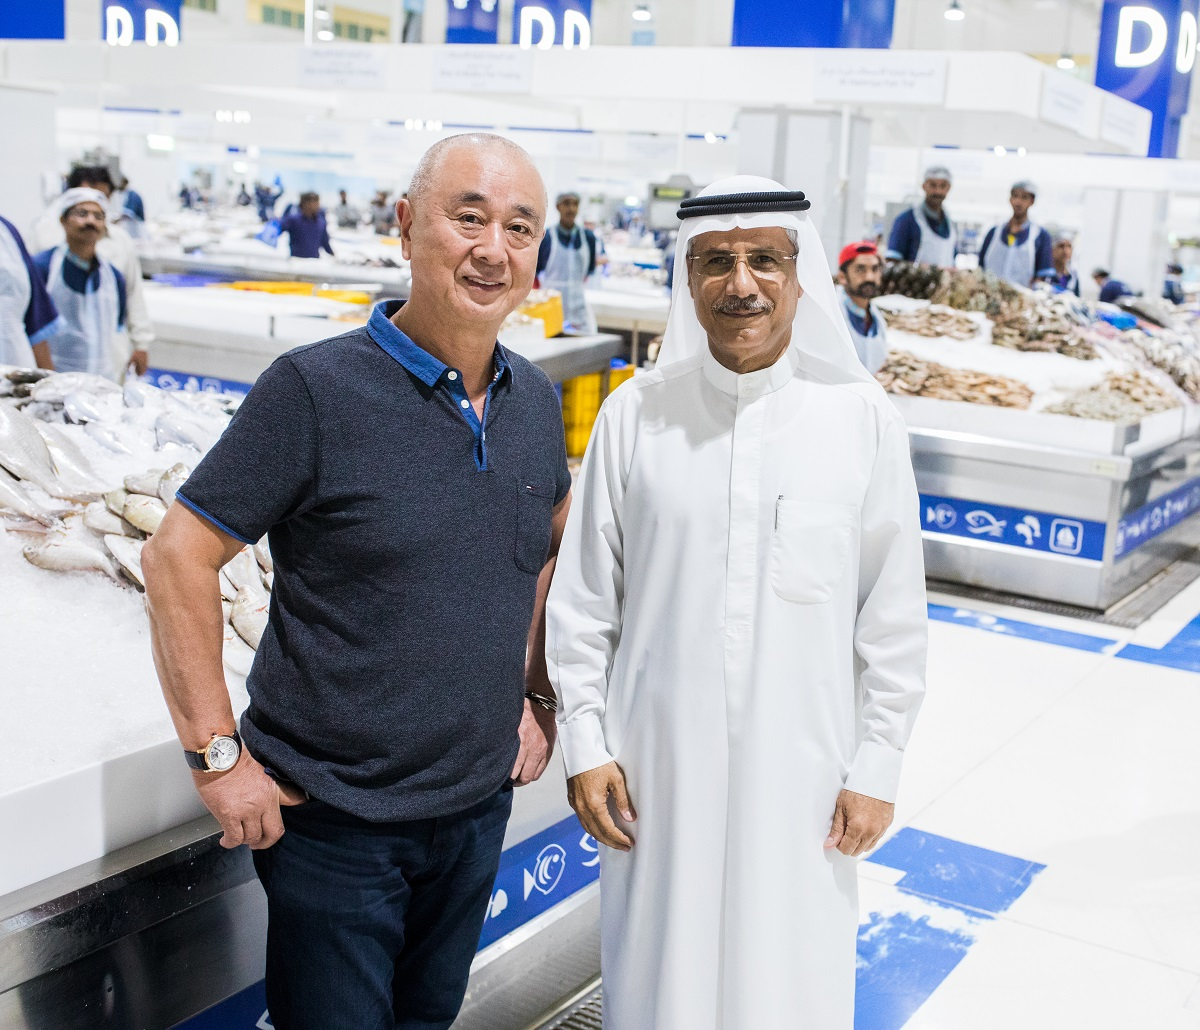 World-renowned Japanese celebrity chef and restauranteur 'Chef Nobu' visits Waterfront Market – Deira on a surprise visit